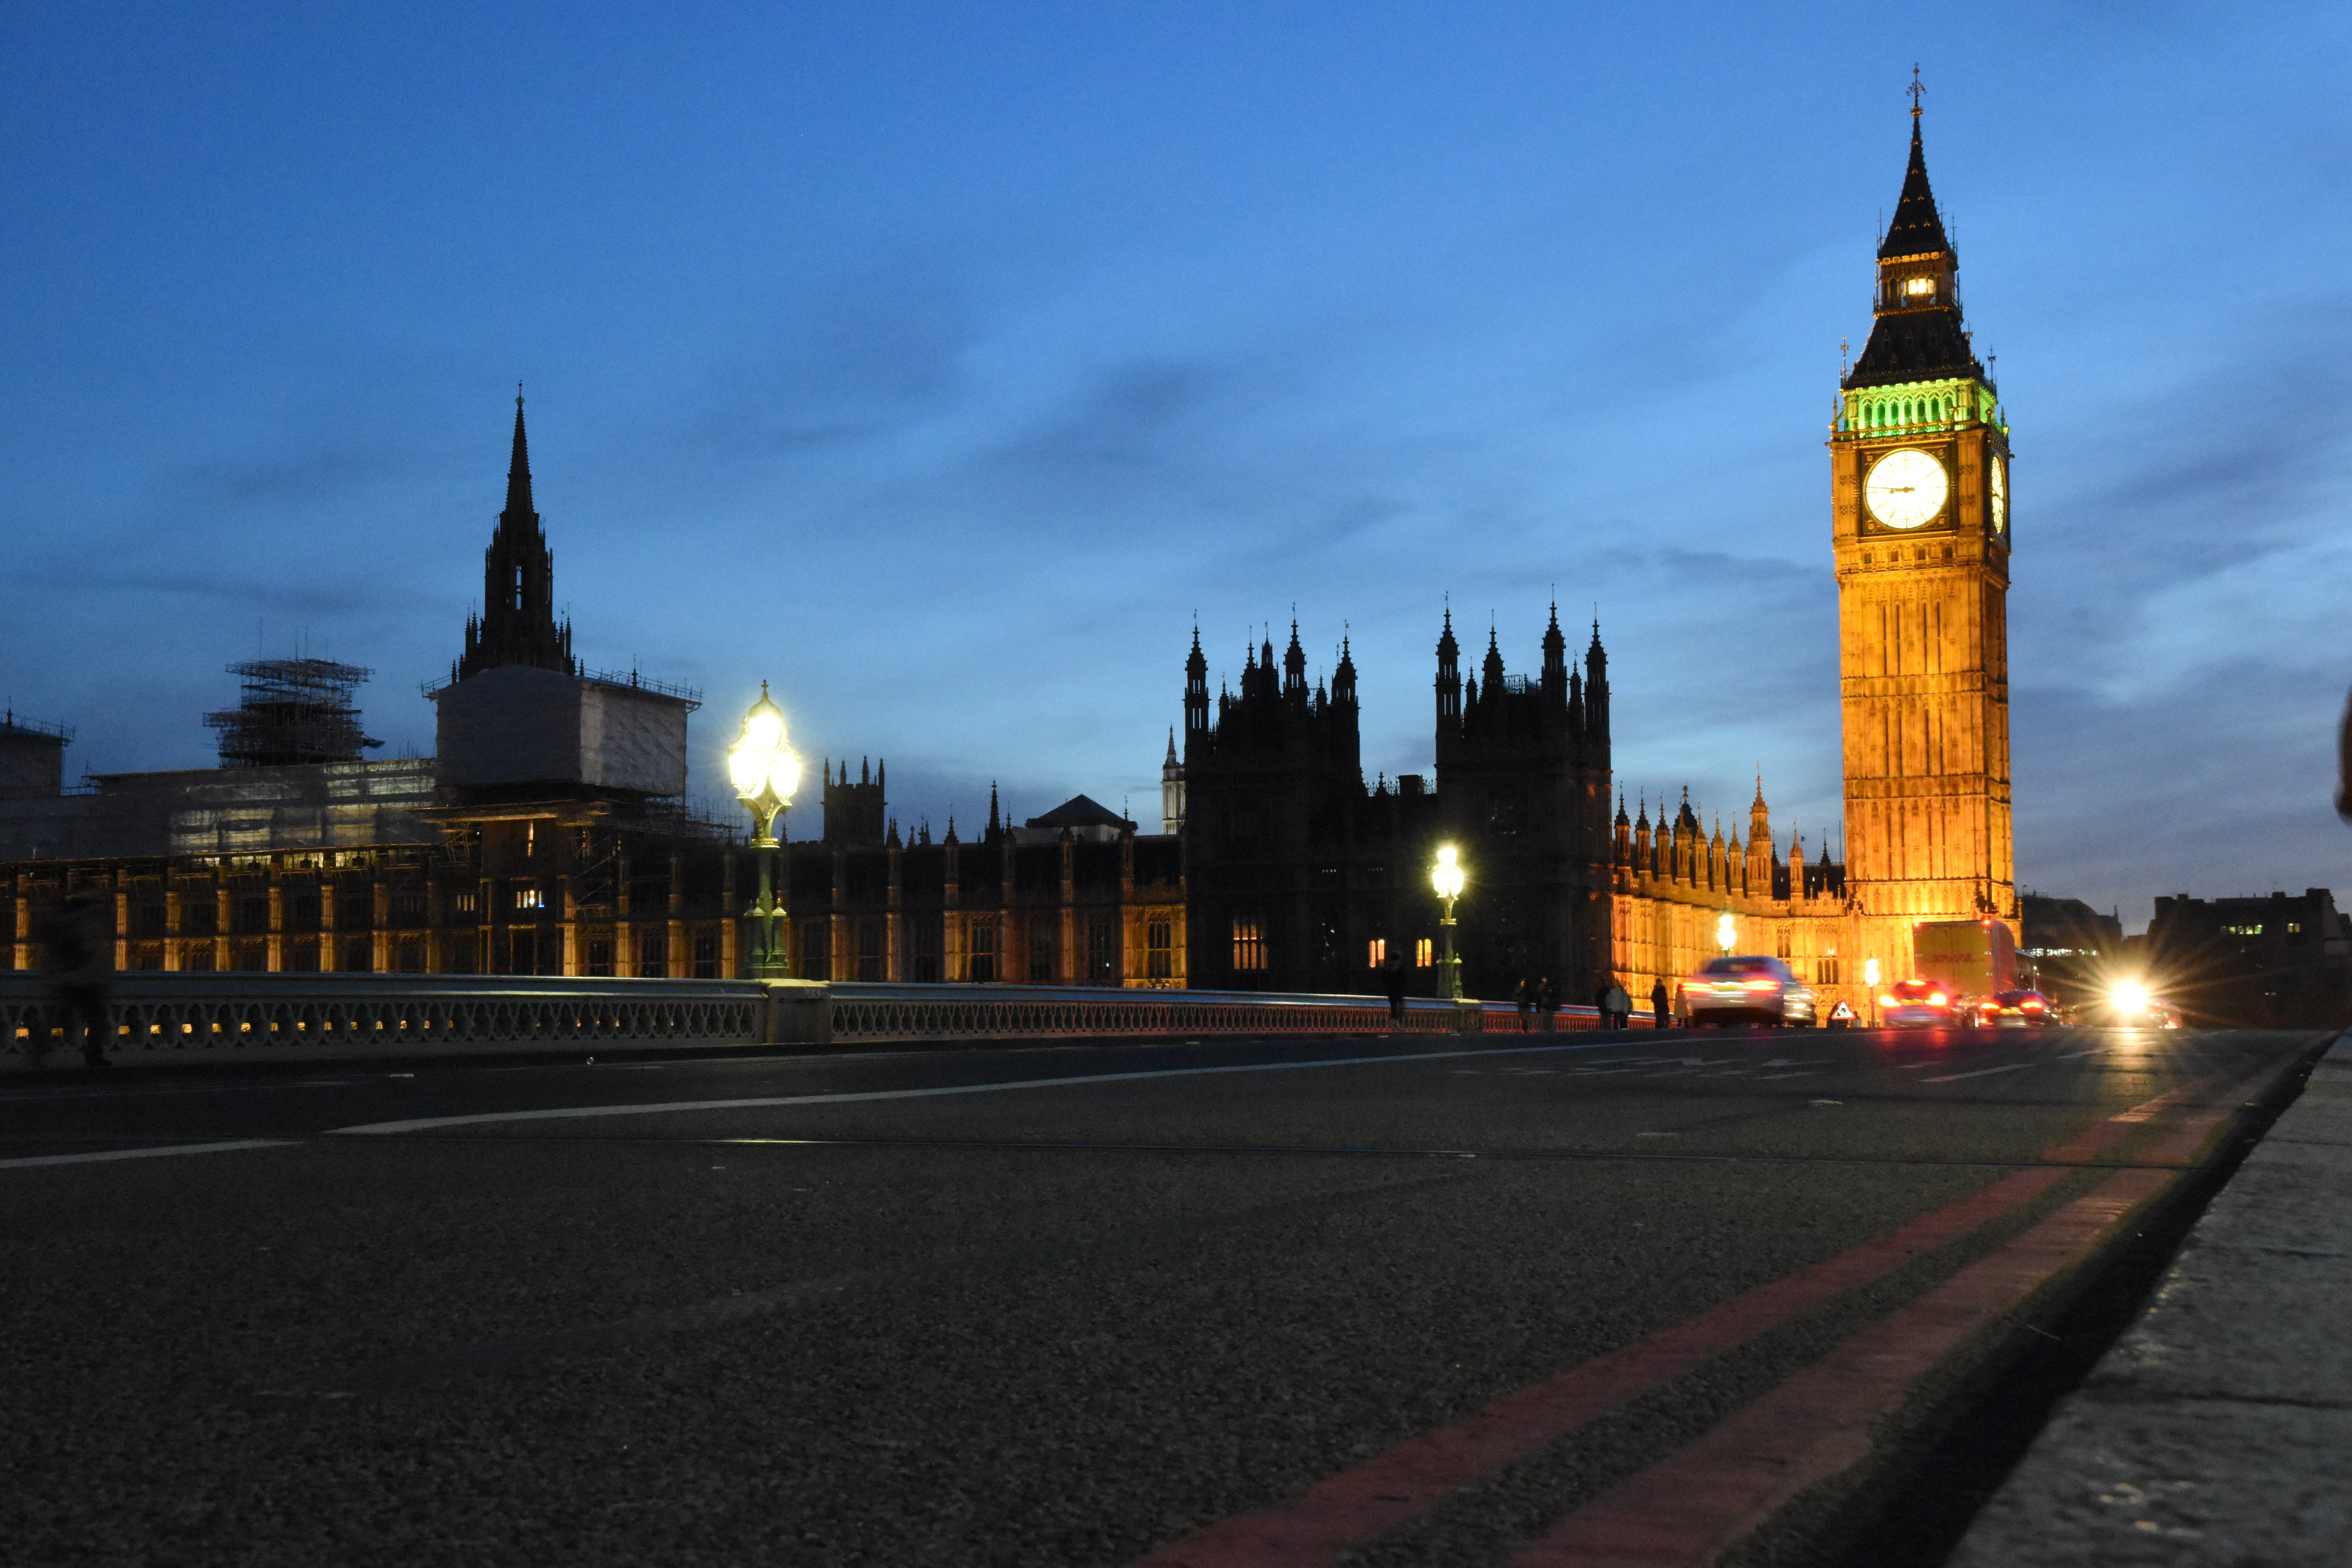 Big Ben, London During Nighttime